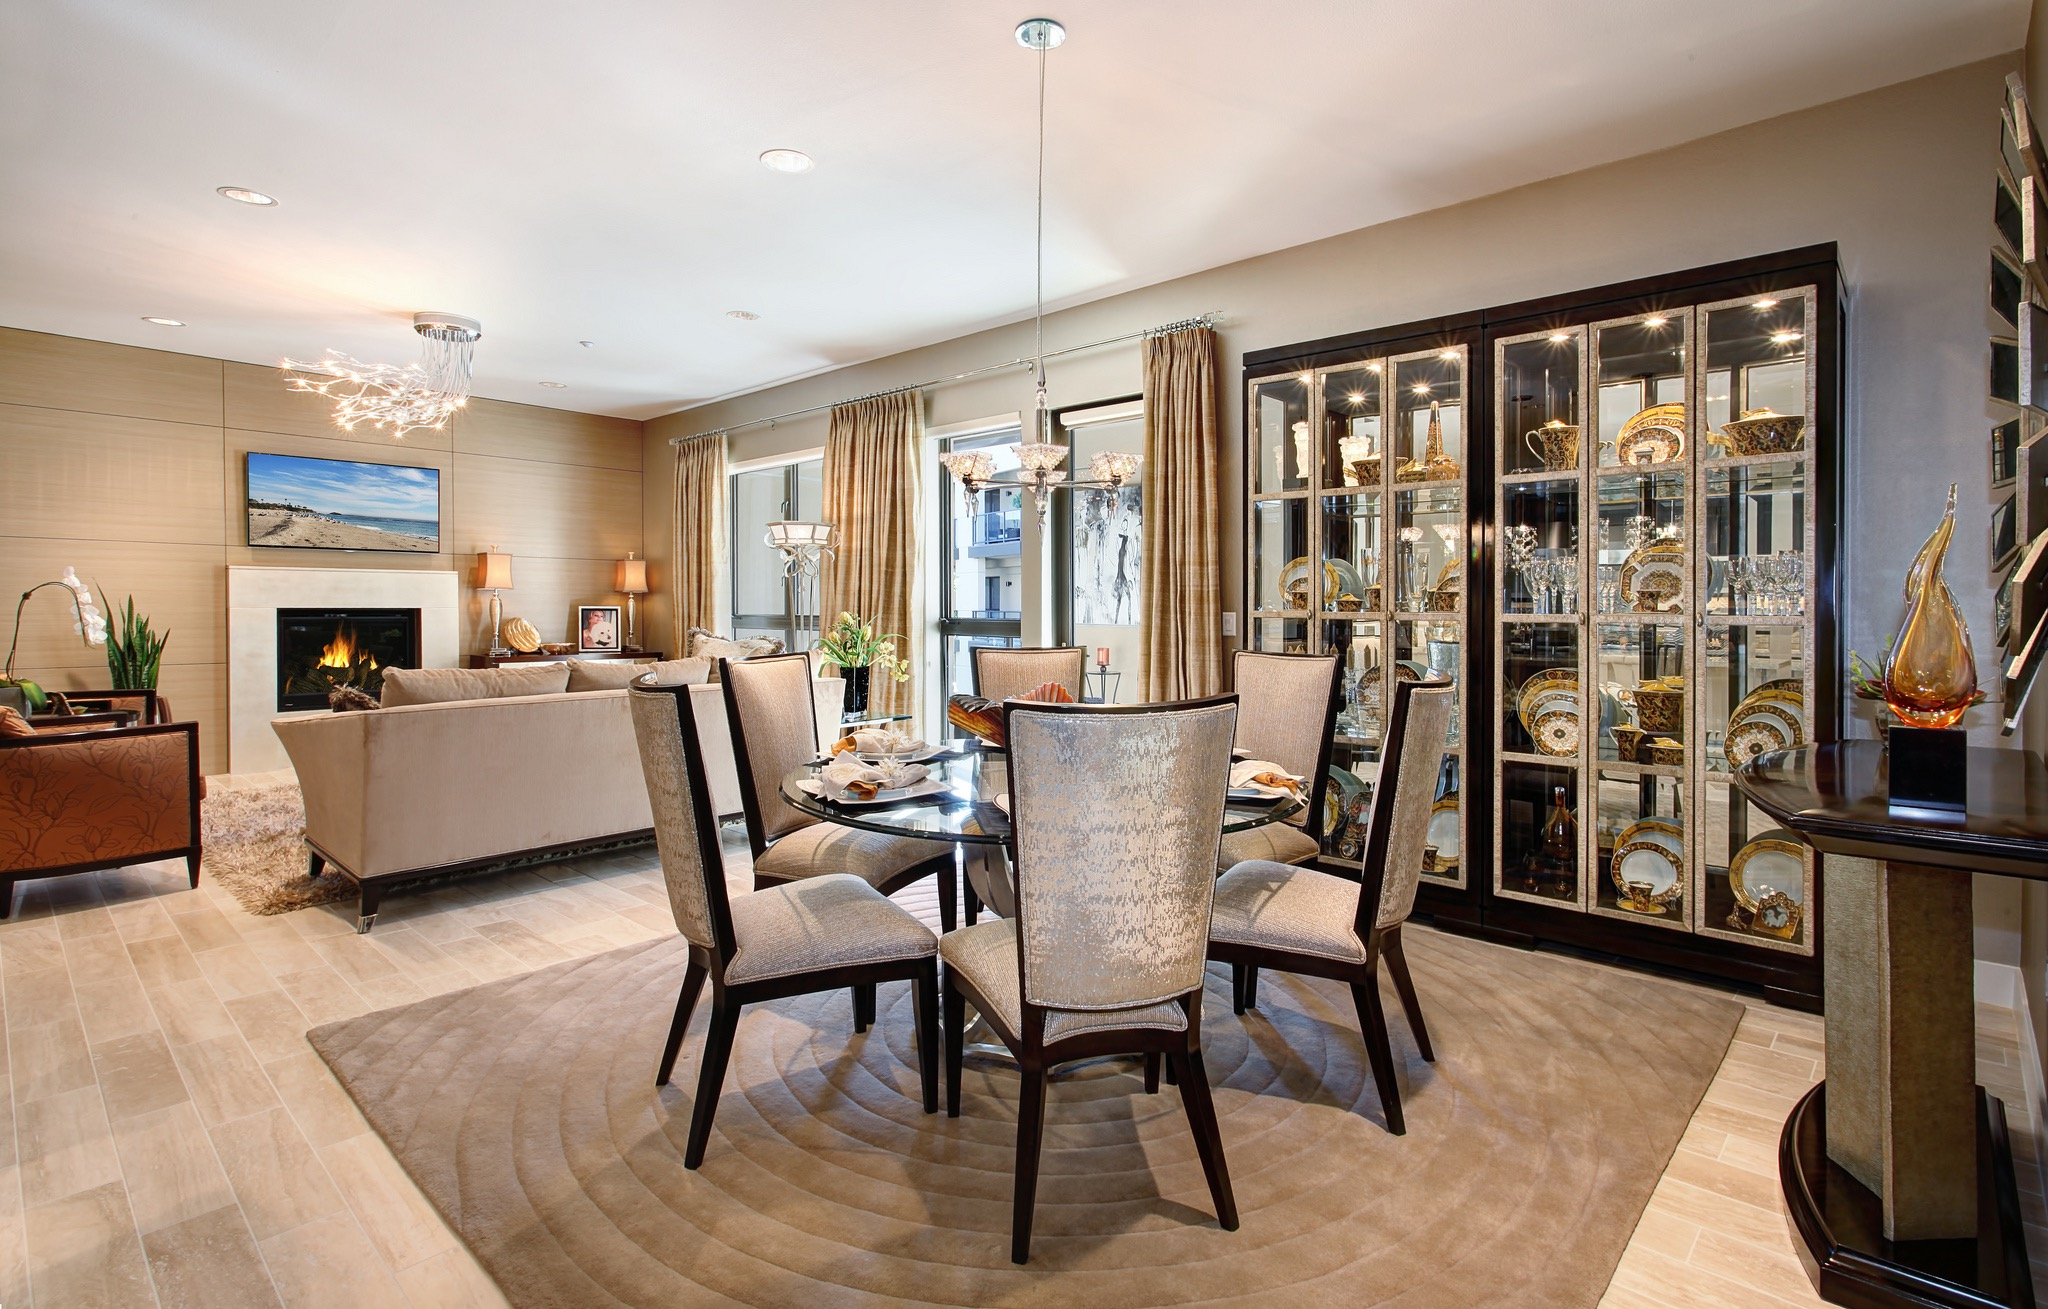 Modern Formal Round Dining Room And Living Room Interior Combo (Image 25 of 30)